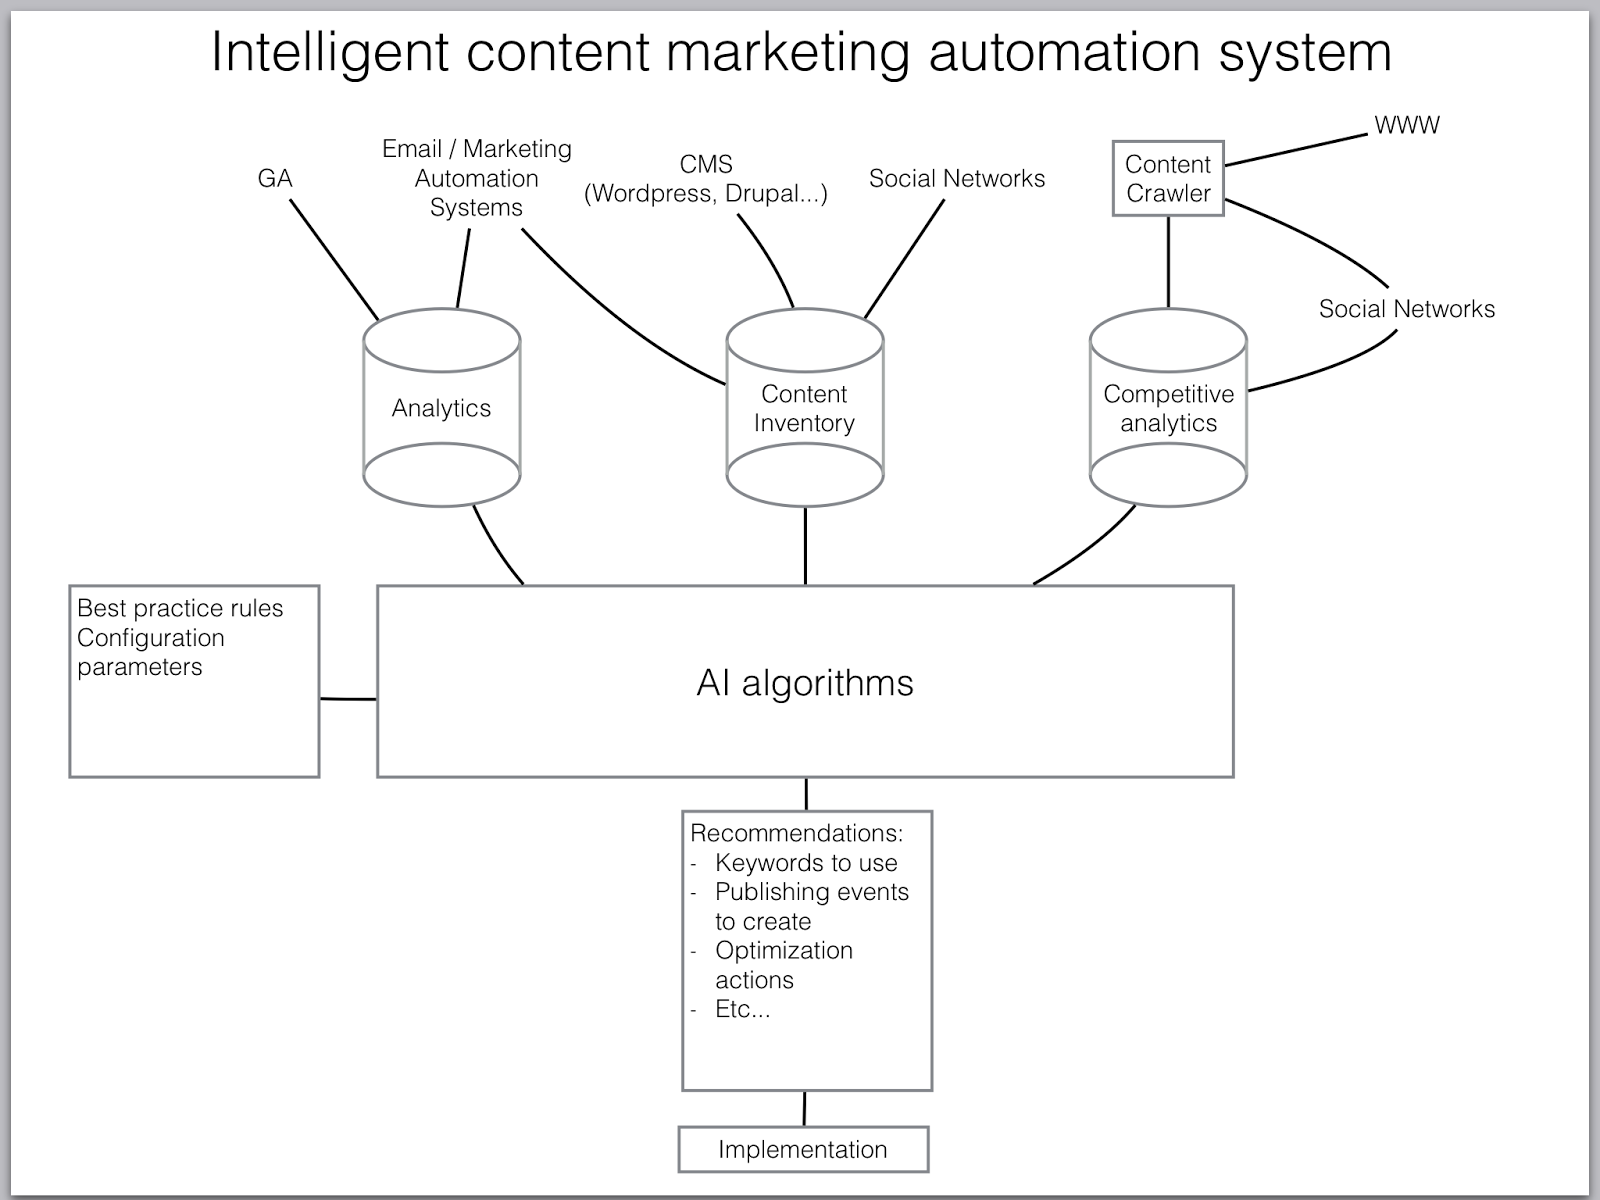 Intelligent content marketing automation system